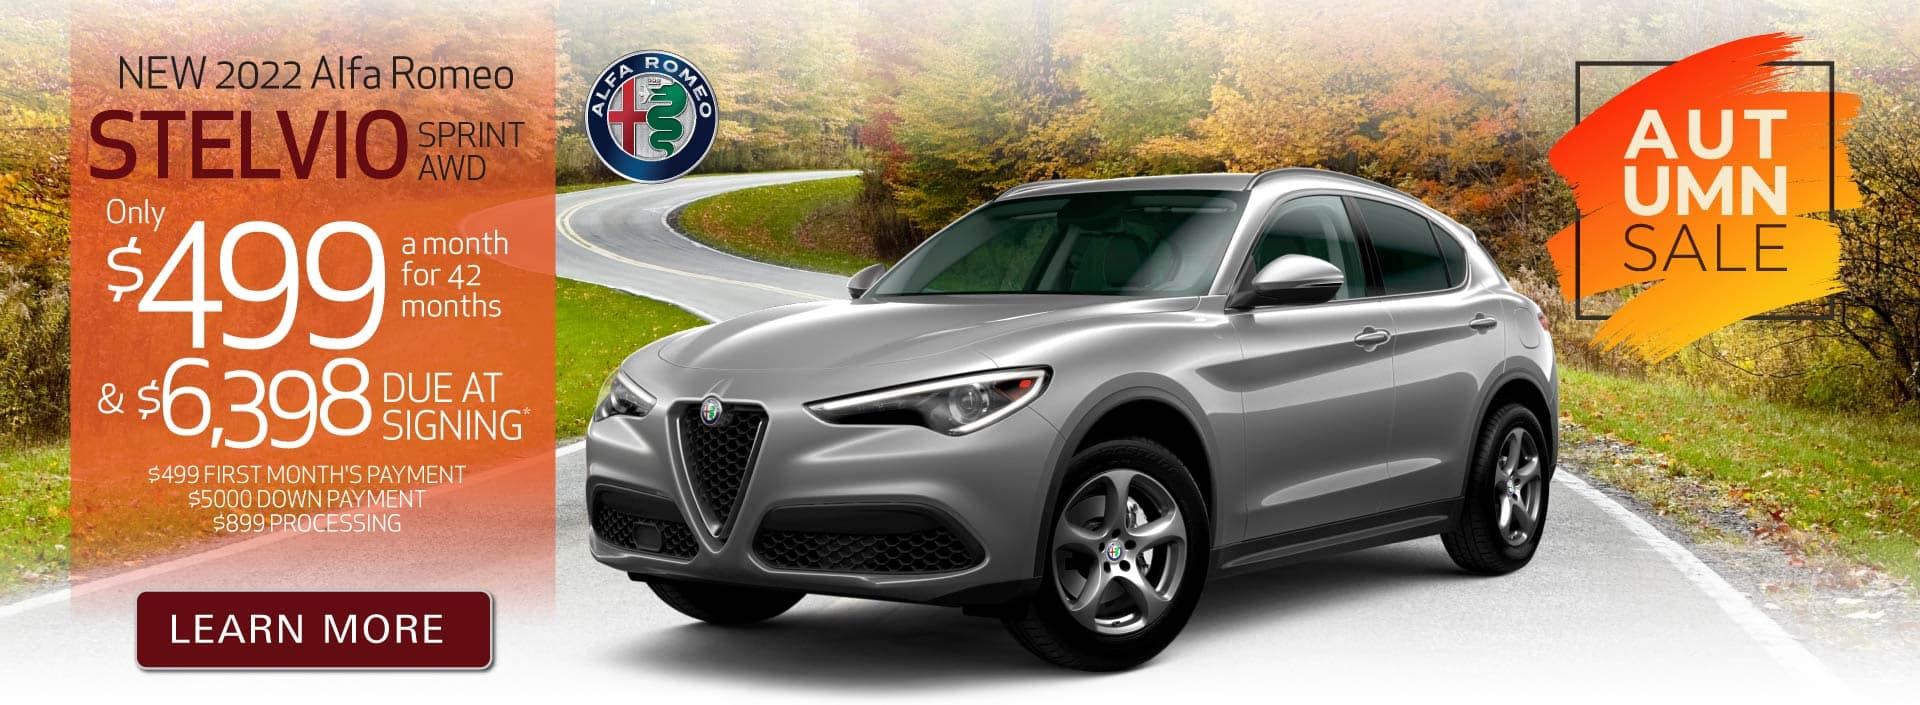 New 2022 Stelvio only $499 a month | Act Now